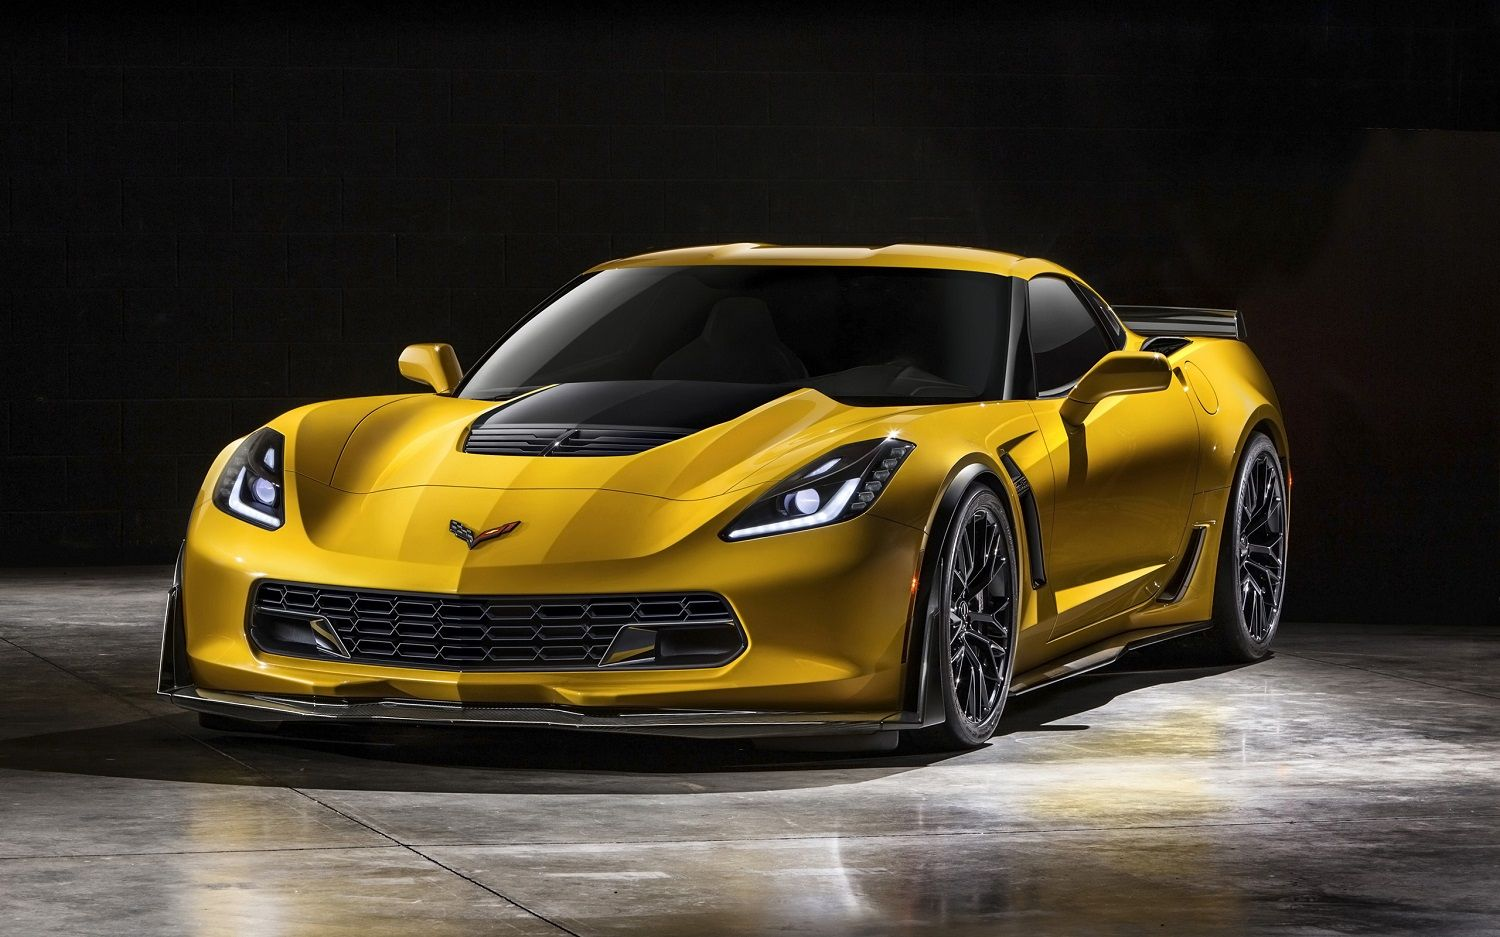 Chevy corvette 2 door sports cars for sale today you can get great prices on the